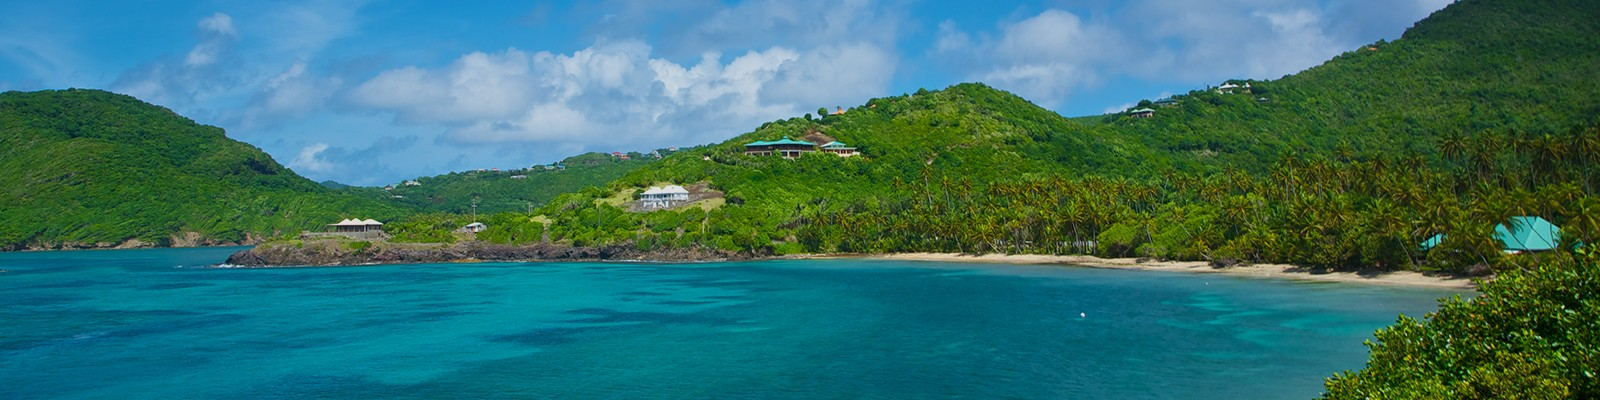 st vincent & Grenadines luxuey holidays header